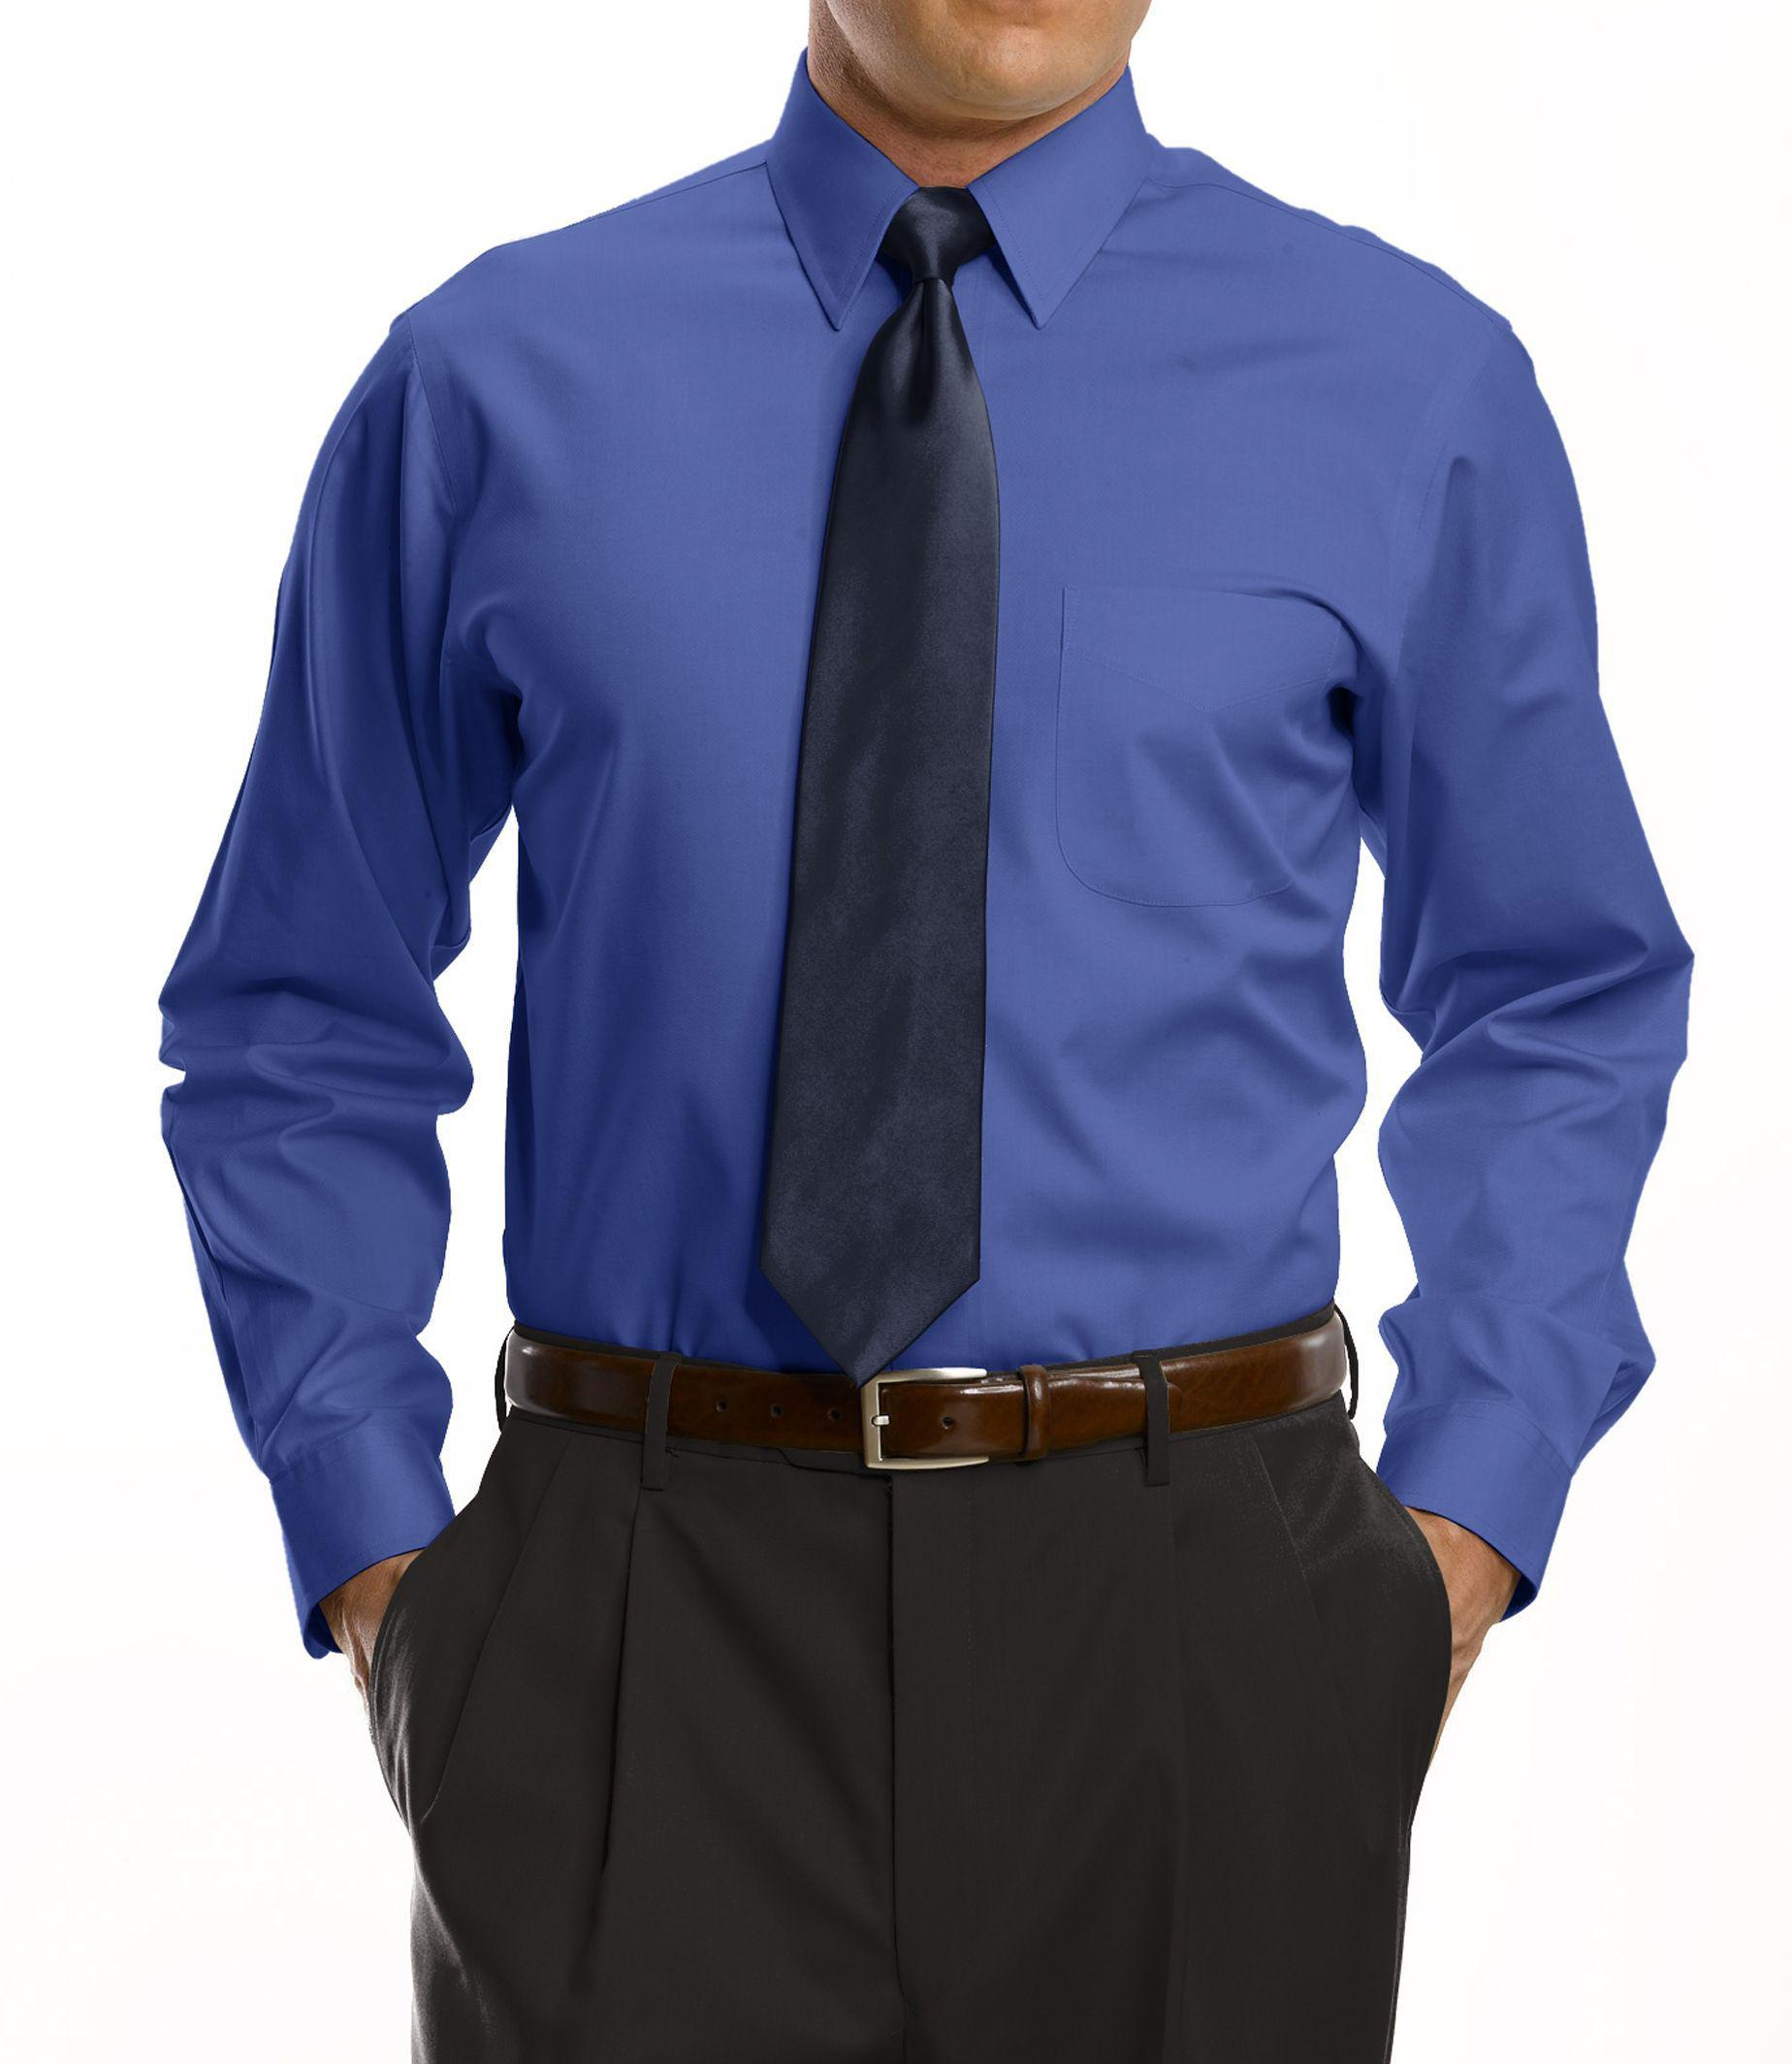 Jos a bank traveller collection tailored fit point for Tailoring a dress shirt